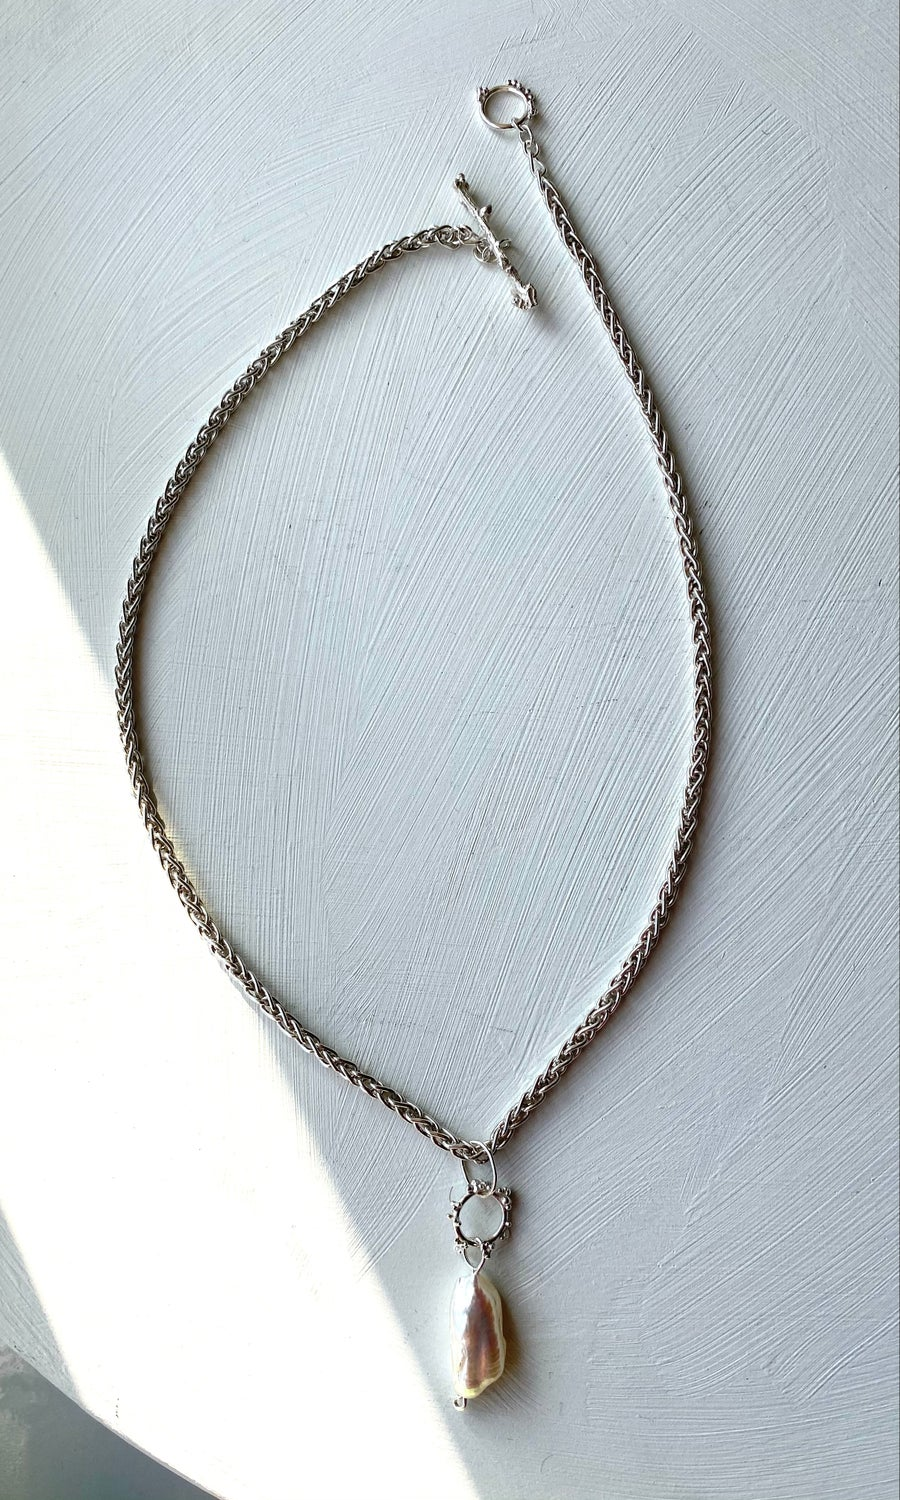 Image of Plethora necklace- Baroque Pearl #2